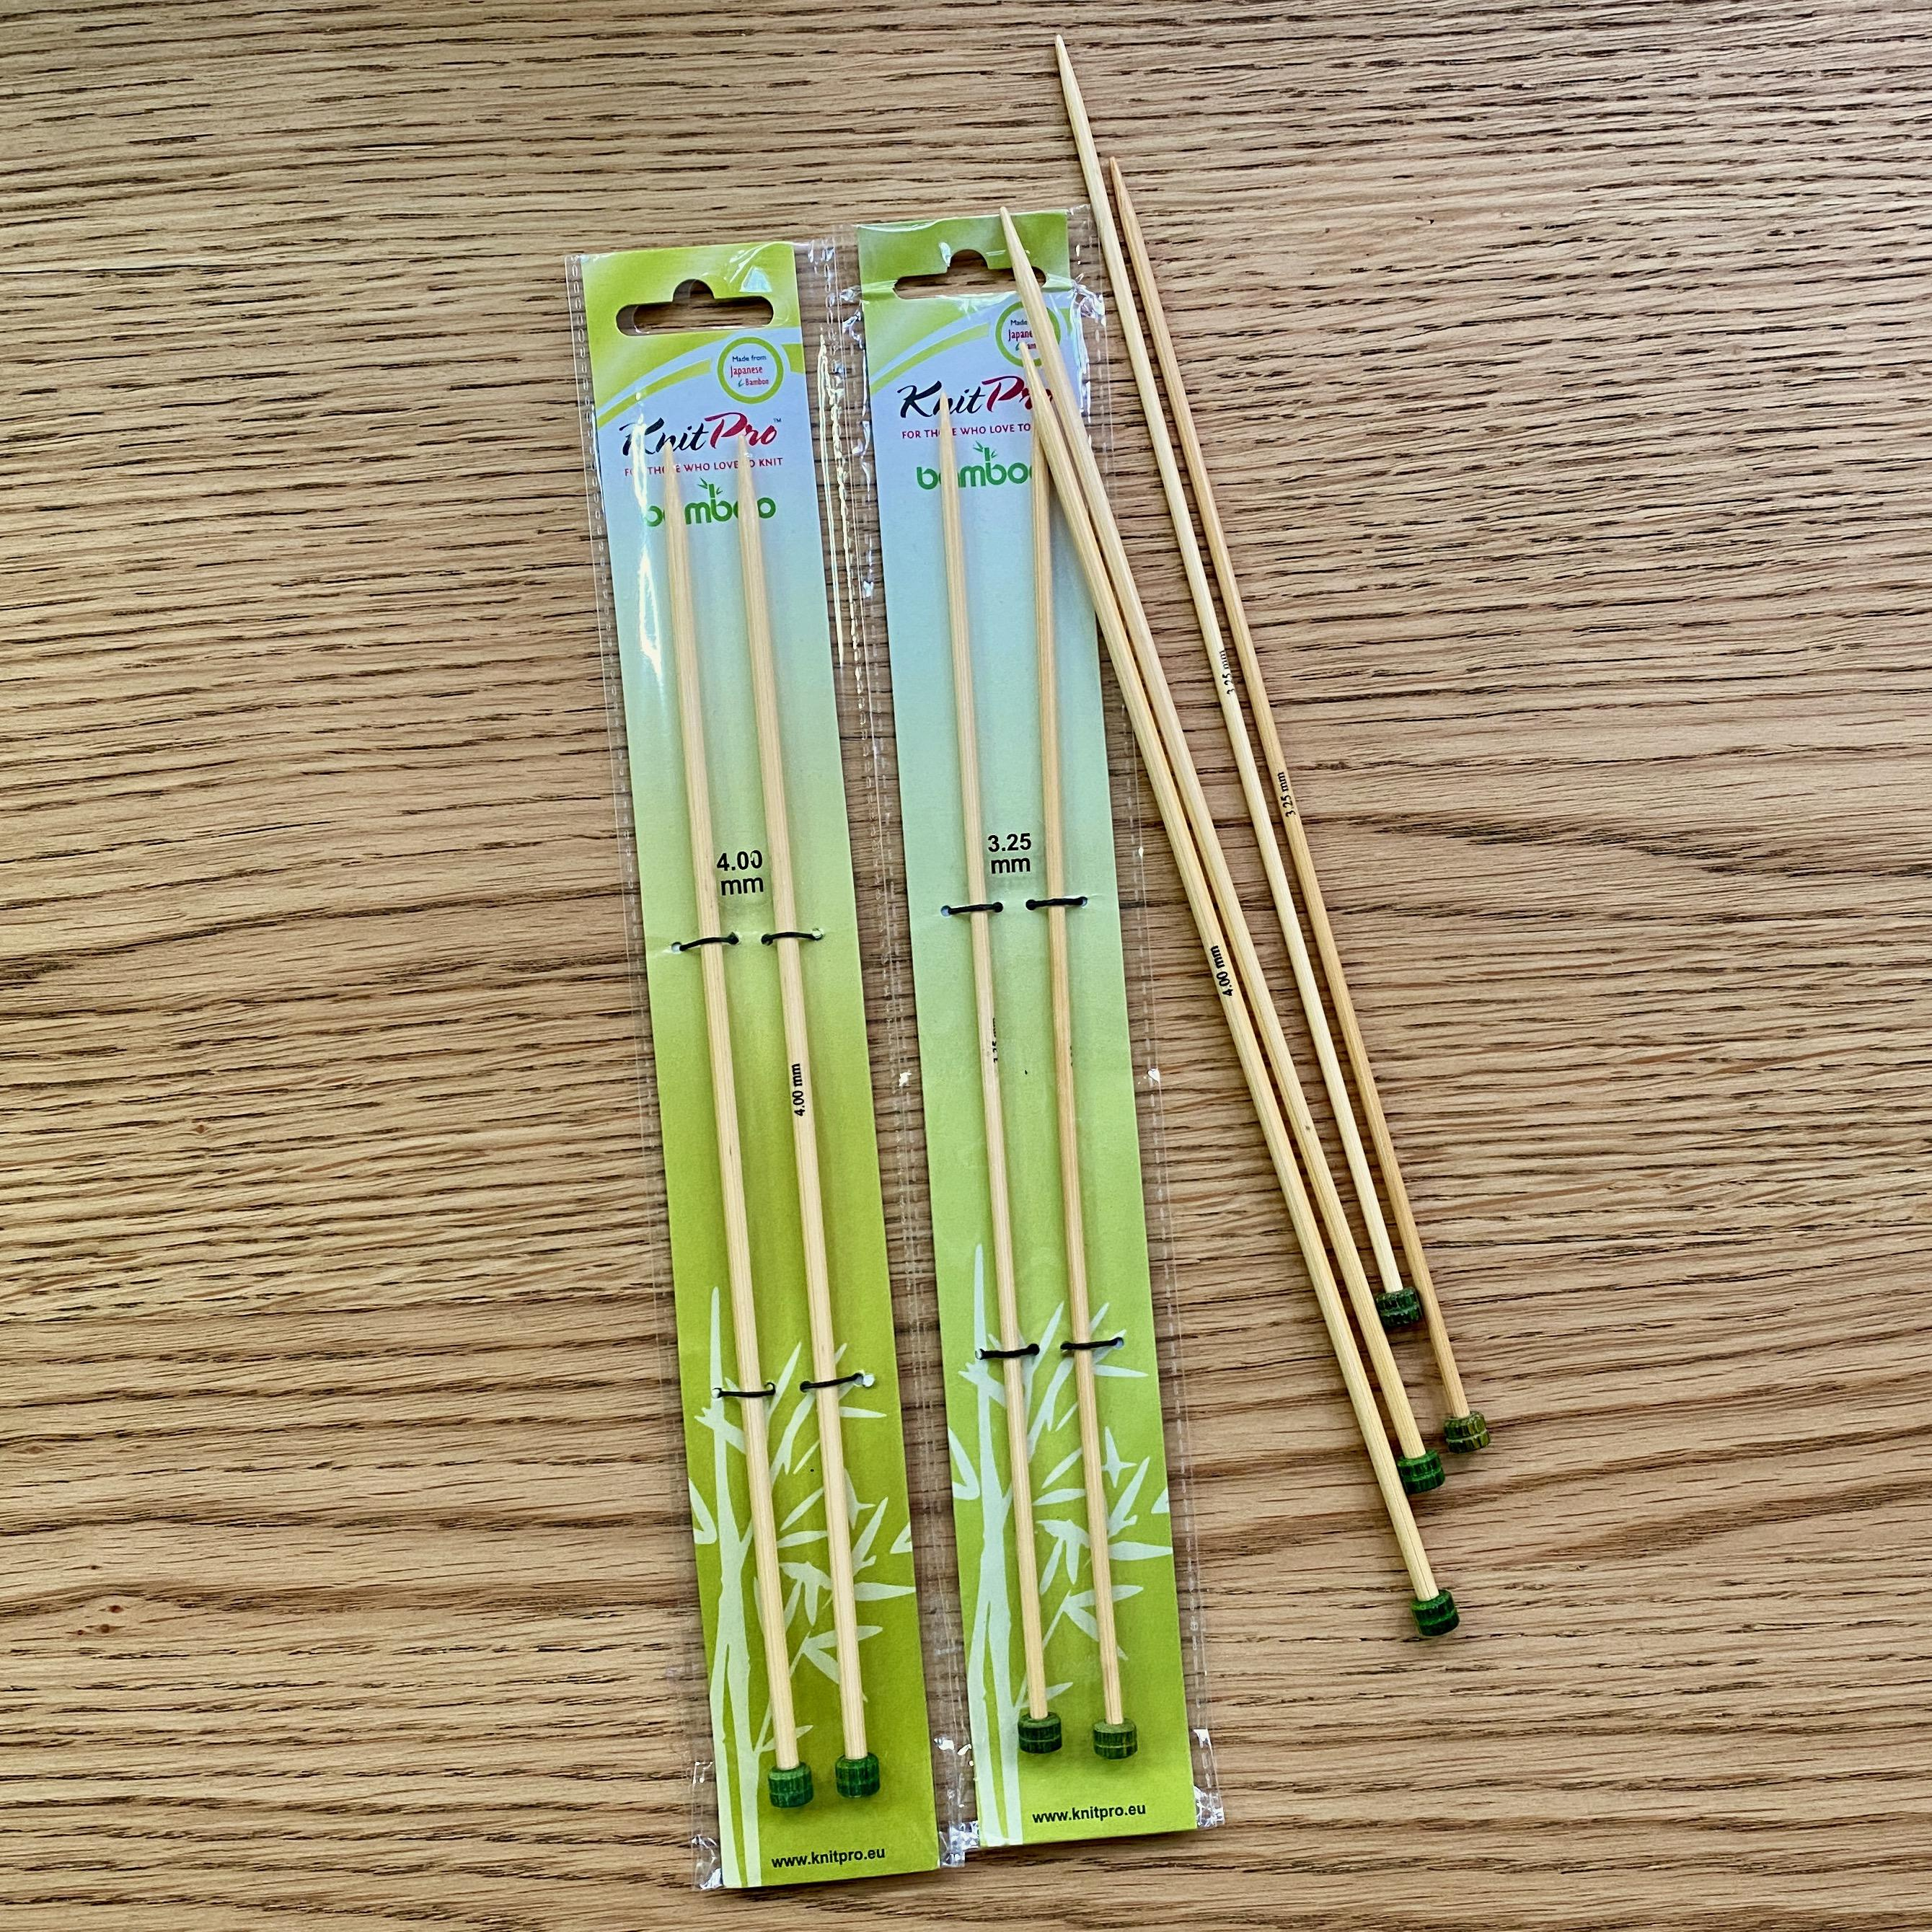 knit pro single pointed needle in green packaging